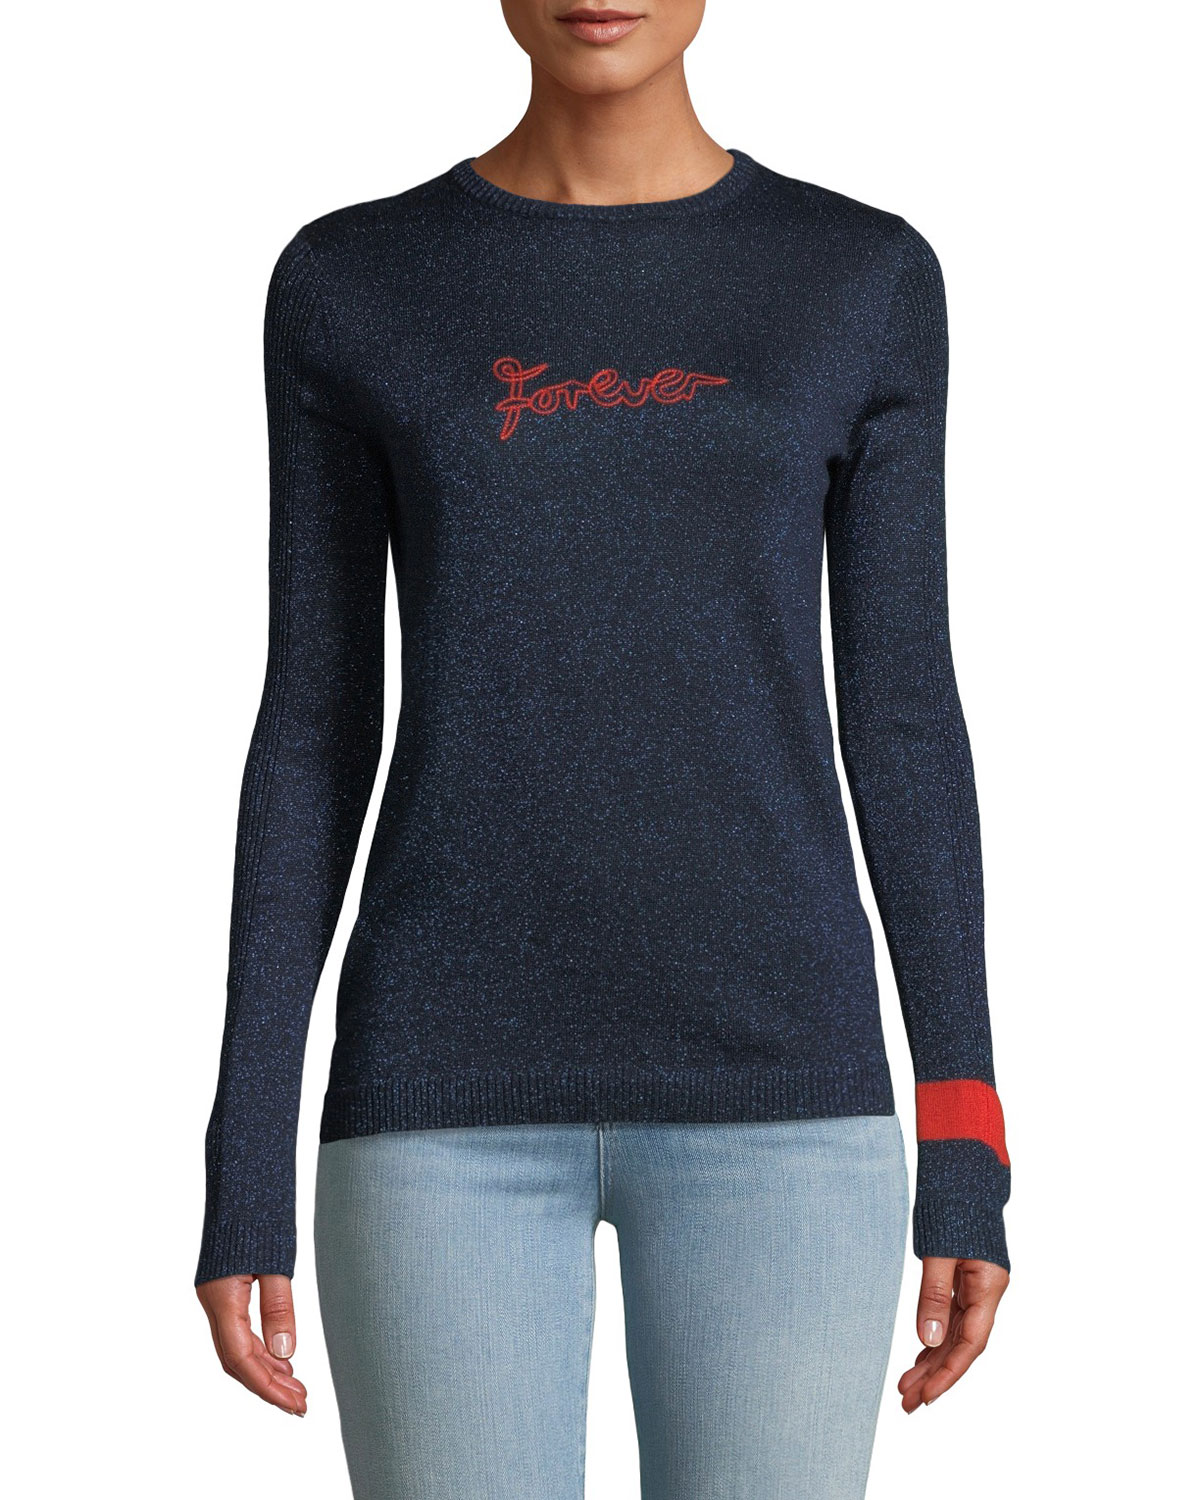 Forever Embroidered Metallic Pullover Sweater